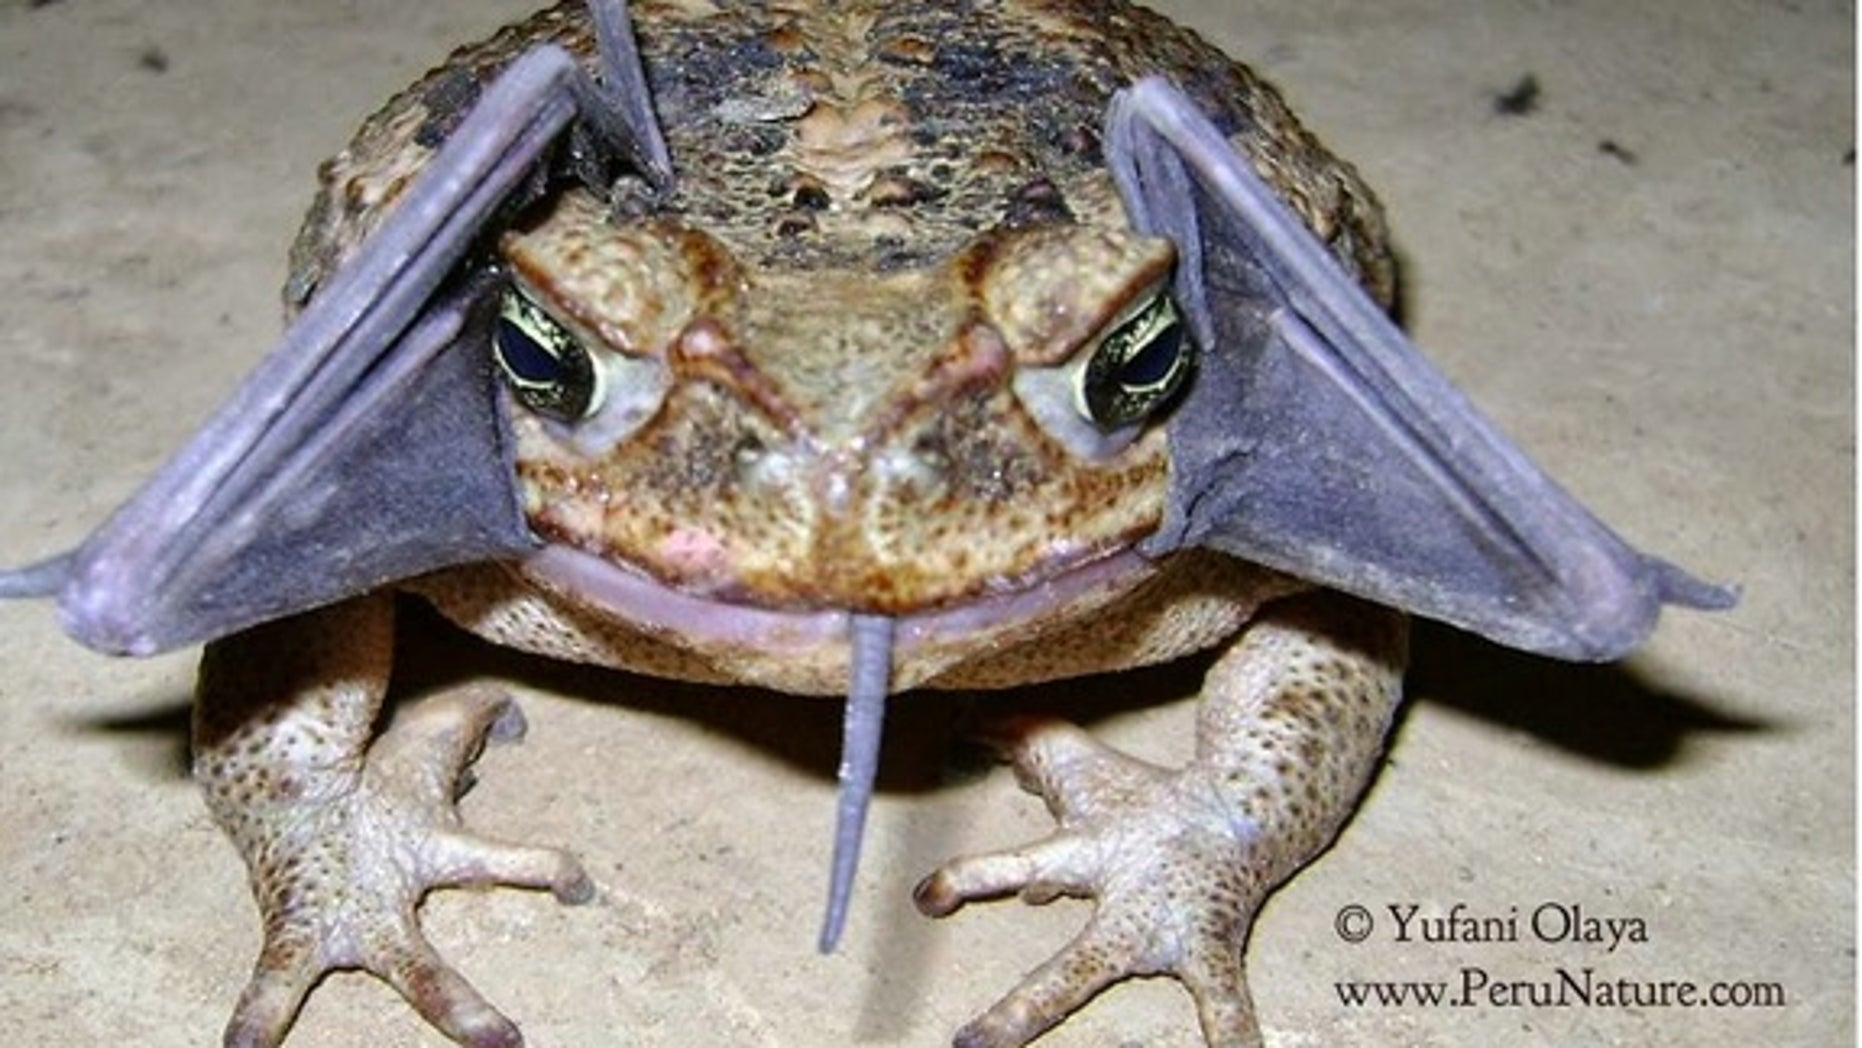 A cane toad with a bat in its mouth in Peru's Cerros de Amotape National Park.